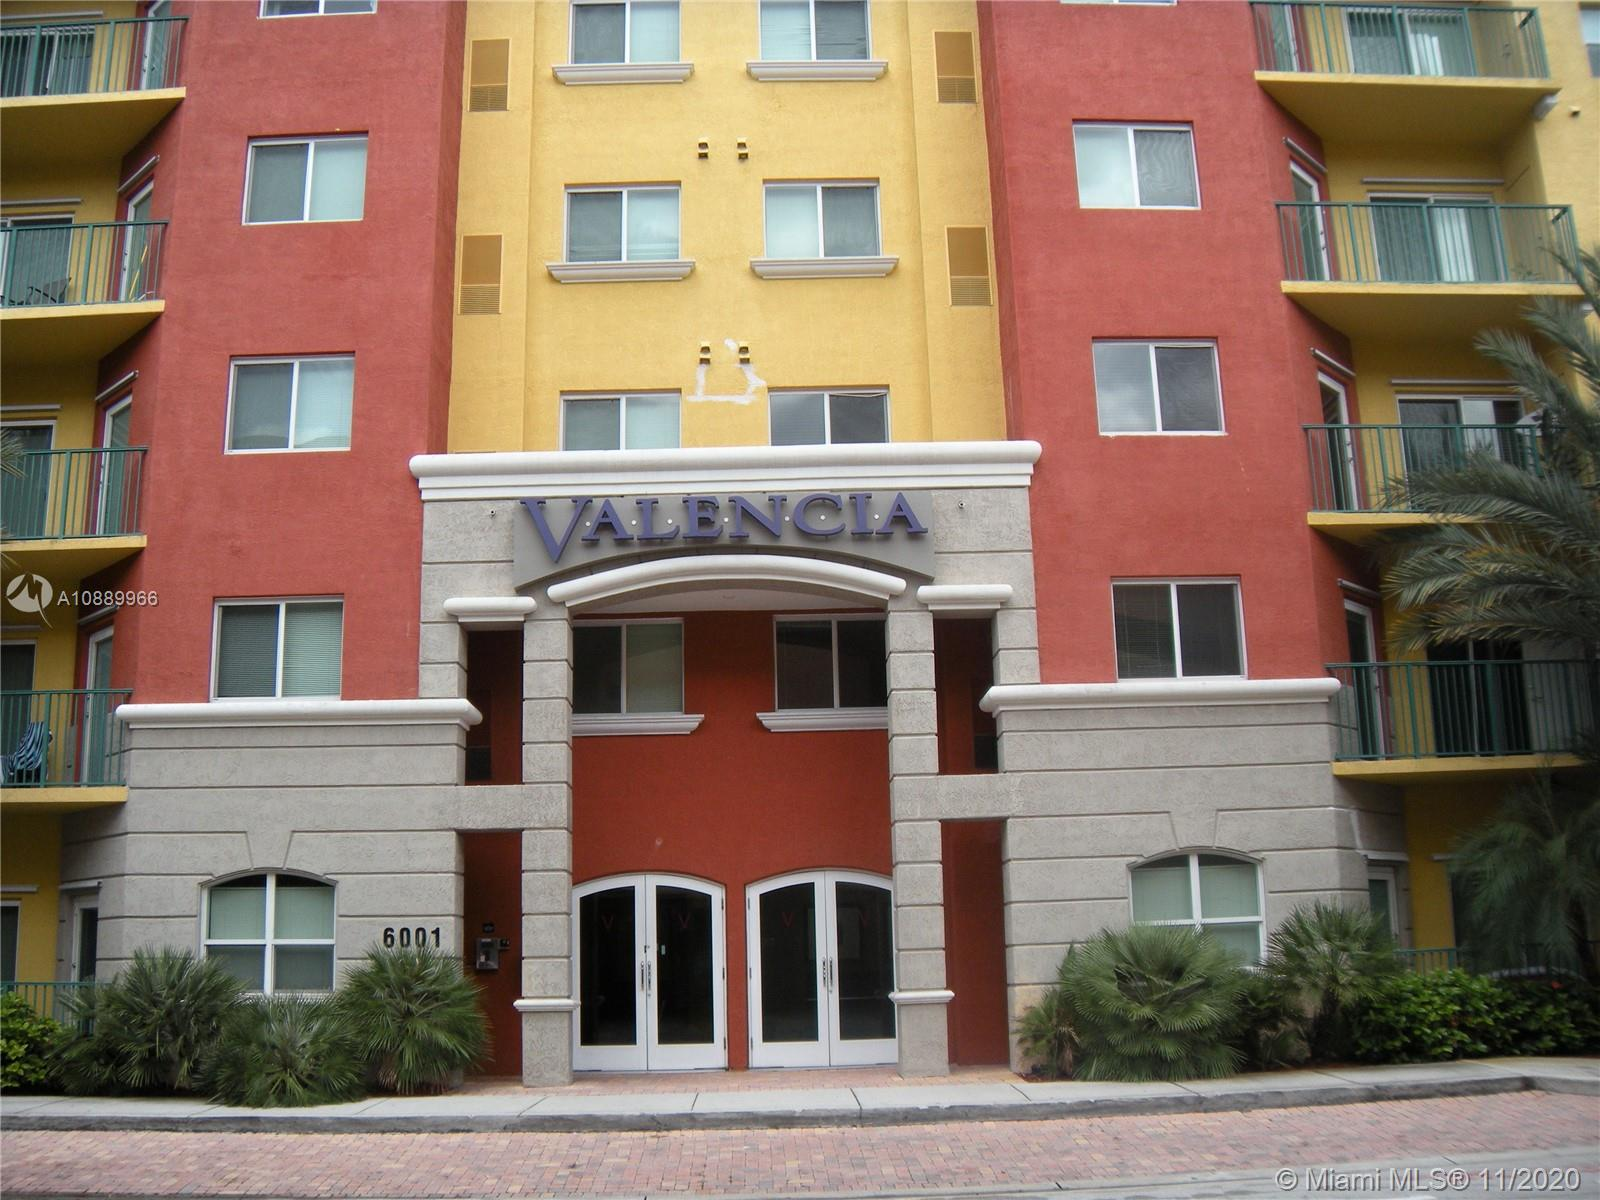 Beautiful, spacious and largest 1 bed, 1 bath and two garages corner unit with direct access to peaceful meditation garden at prestigious Valencia Condo at S. Miami. New ceramic floors throughout. Valencia offers great amenities including swimming pool, Barbeque, Gym, Internet café, 24 hr security. Once block from metro, close to UM University, main hospital, Restaurants, Shops, Movie theaters, a Must see.